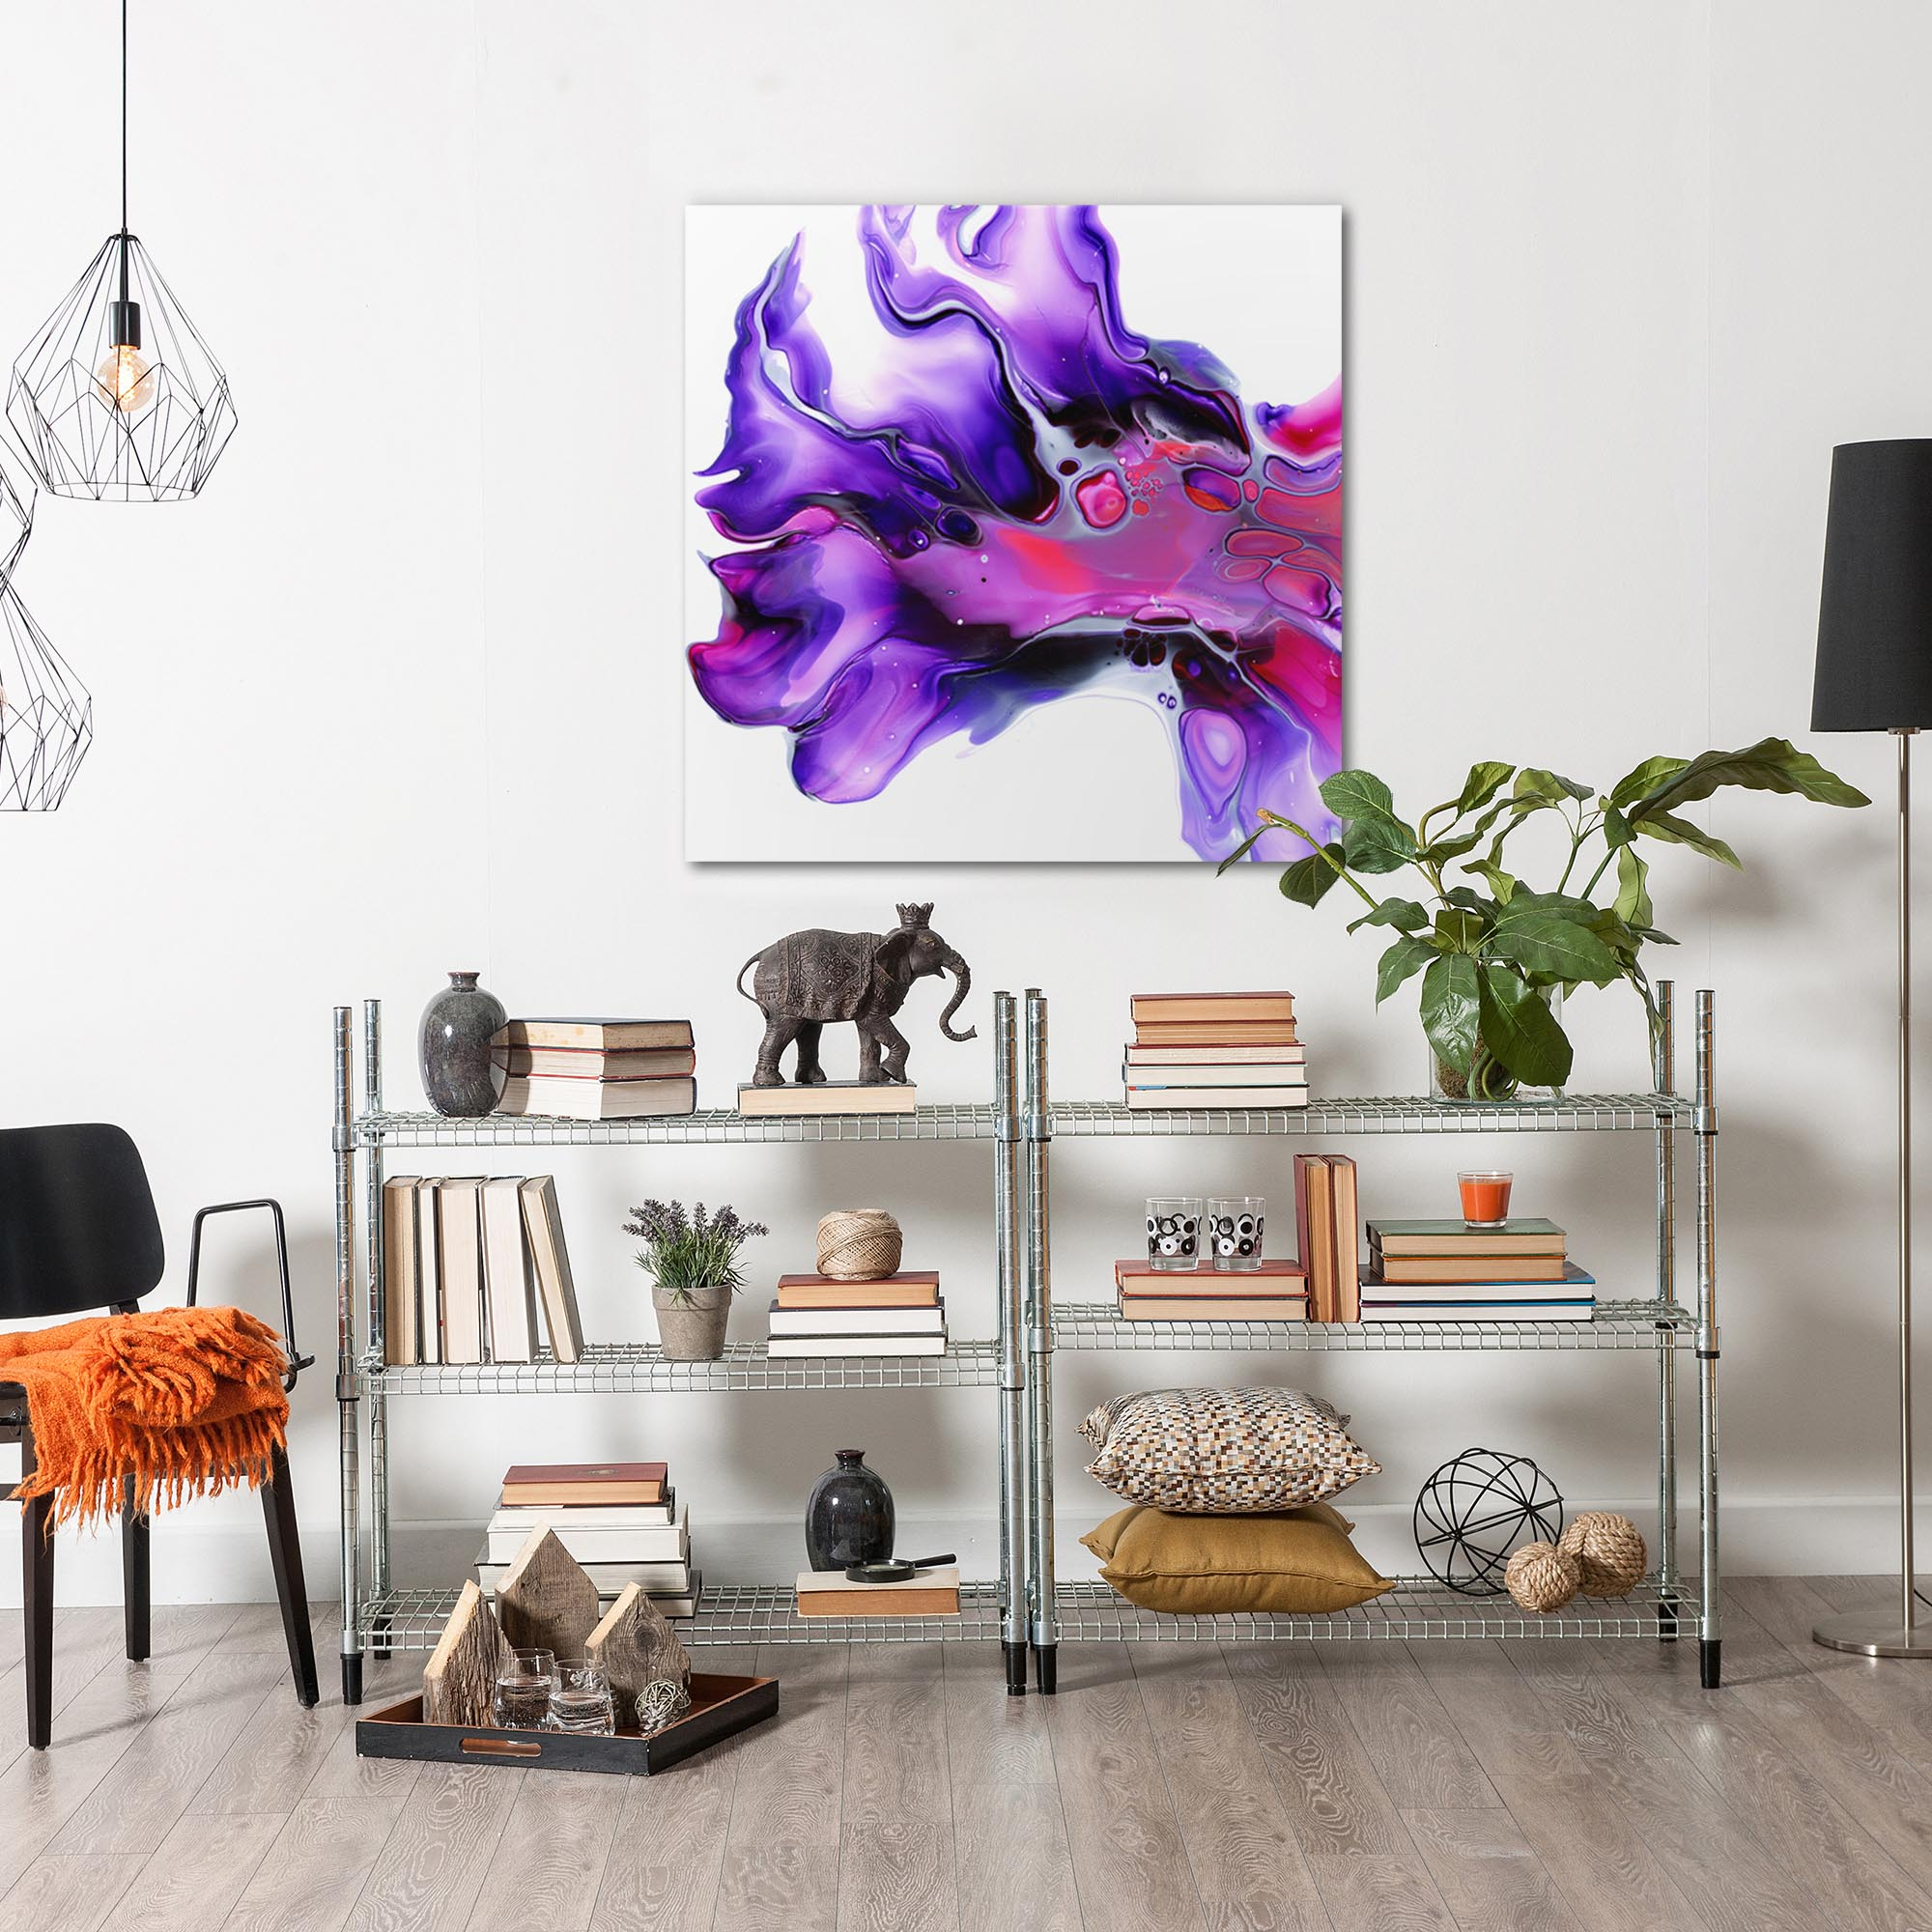 Posy by Elana Reiter - Abstract Wall Art, Modern Home Decor (36in x 36in) - Image 3